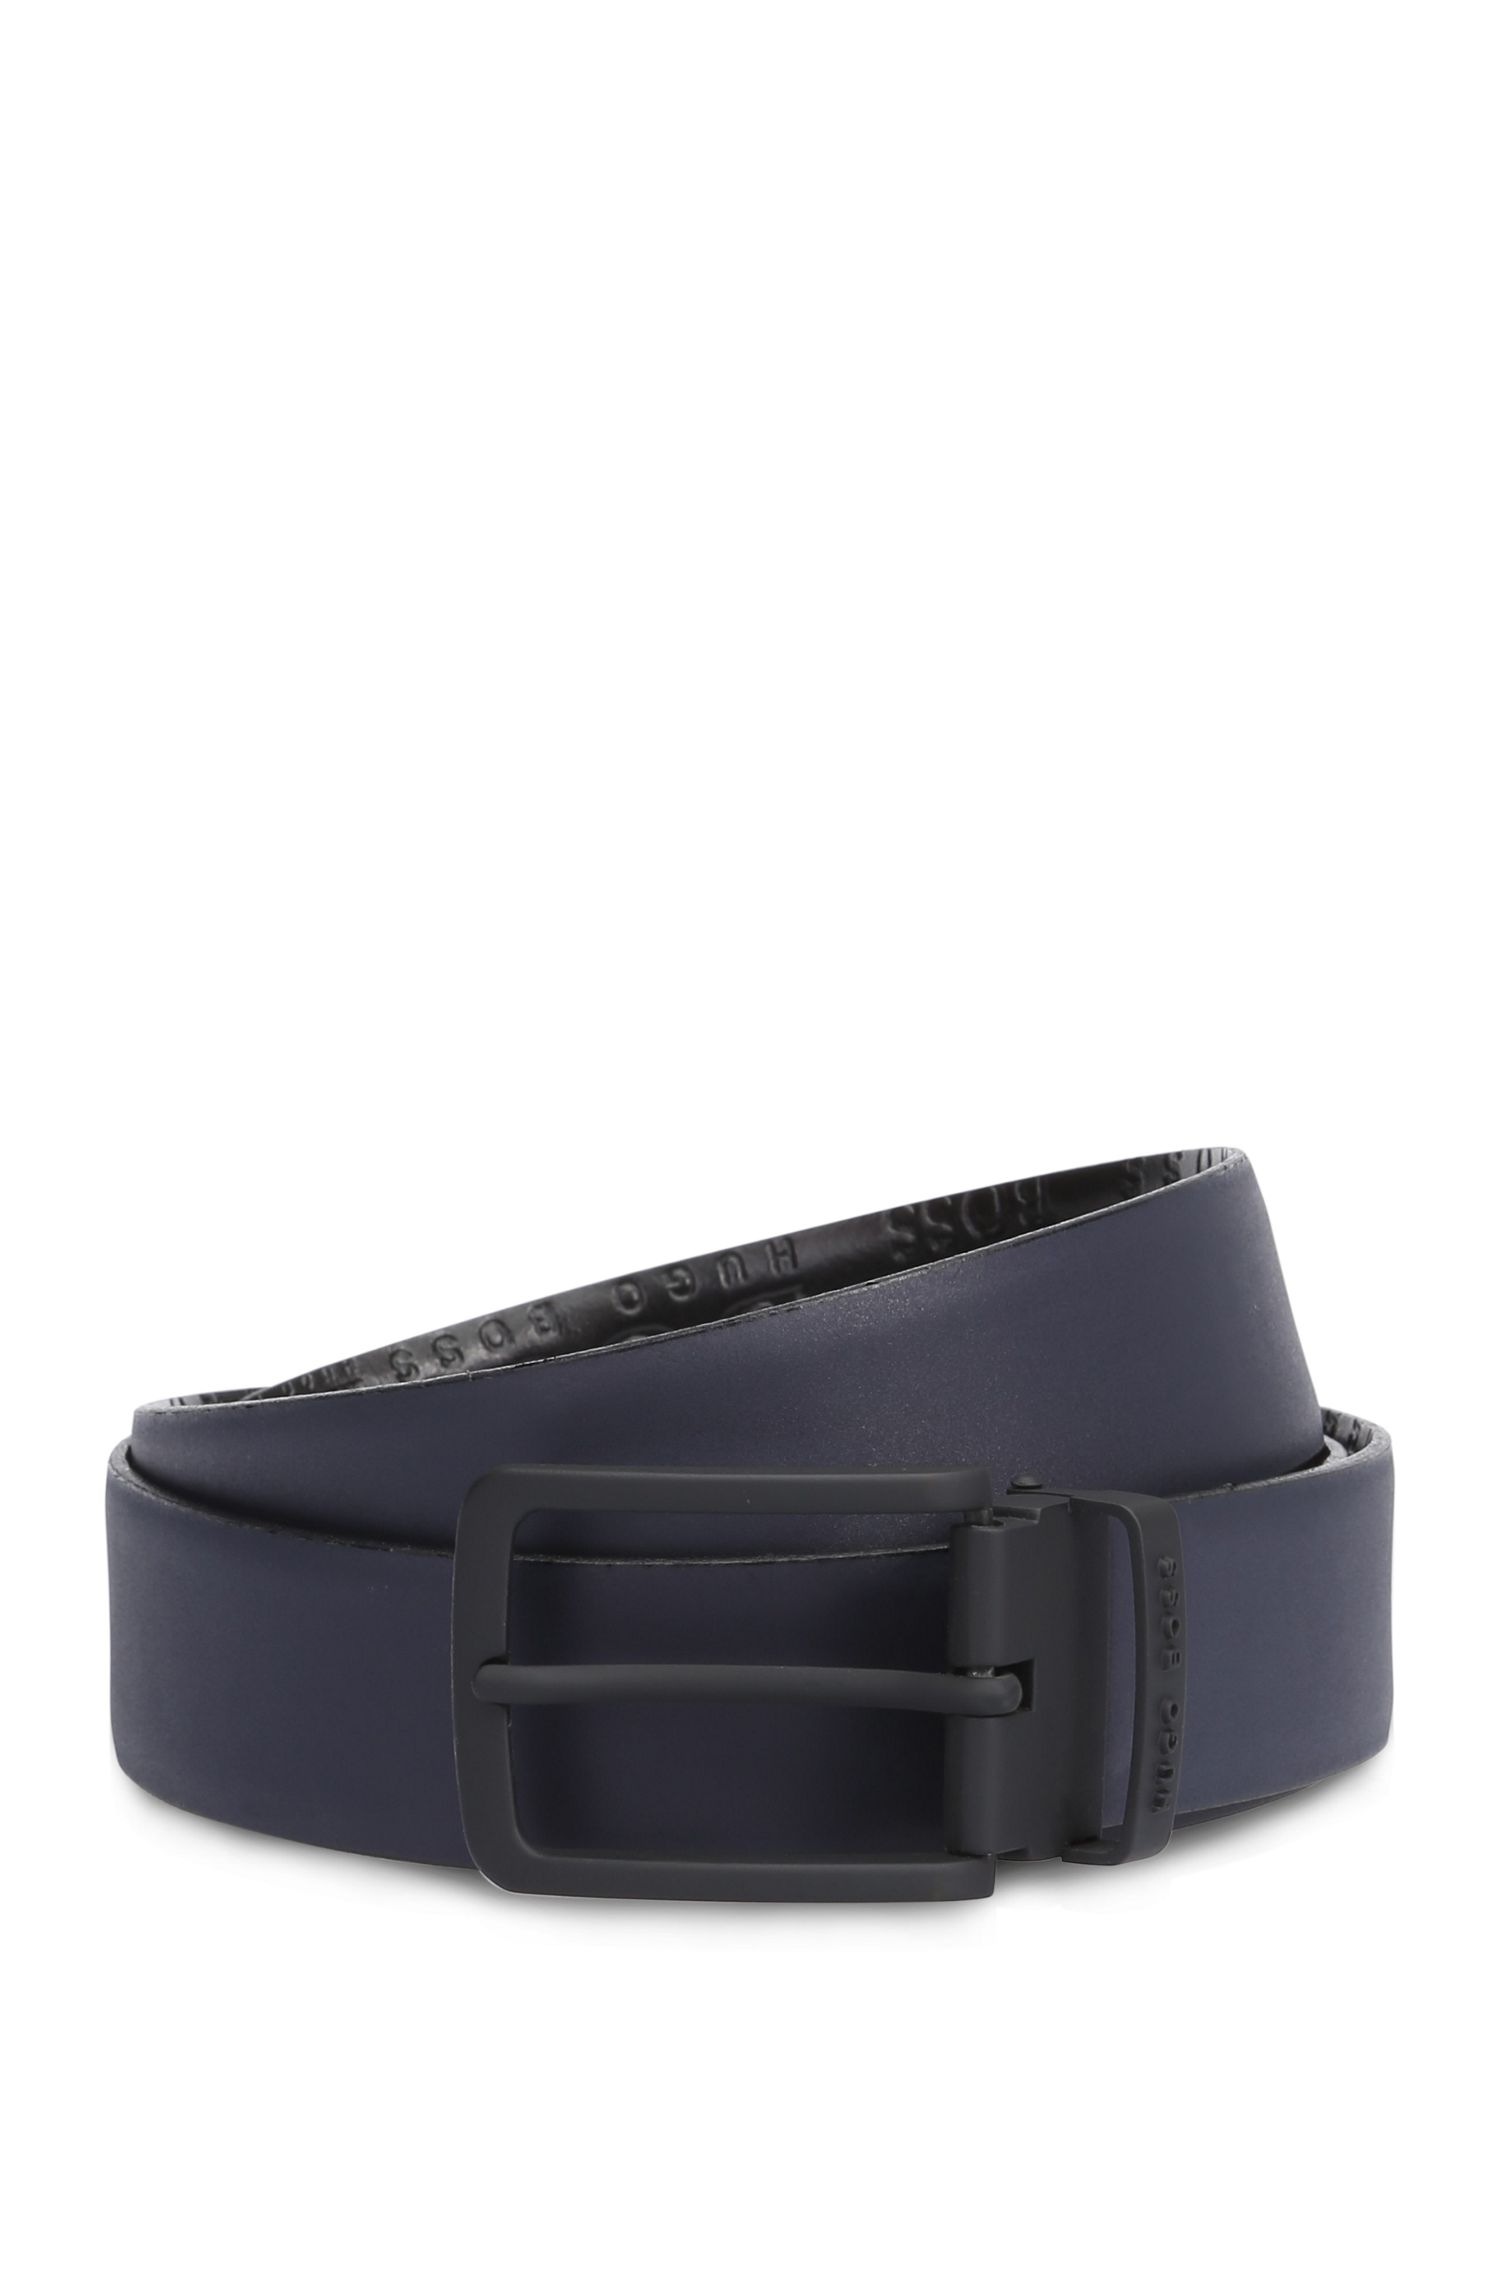 'Toby Or Ps' | Embossed Leather Belt